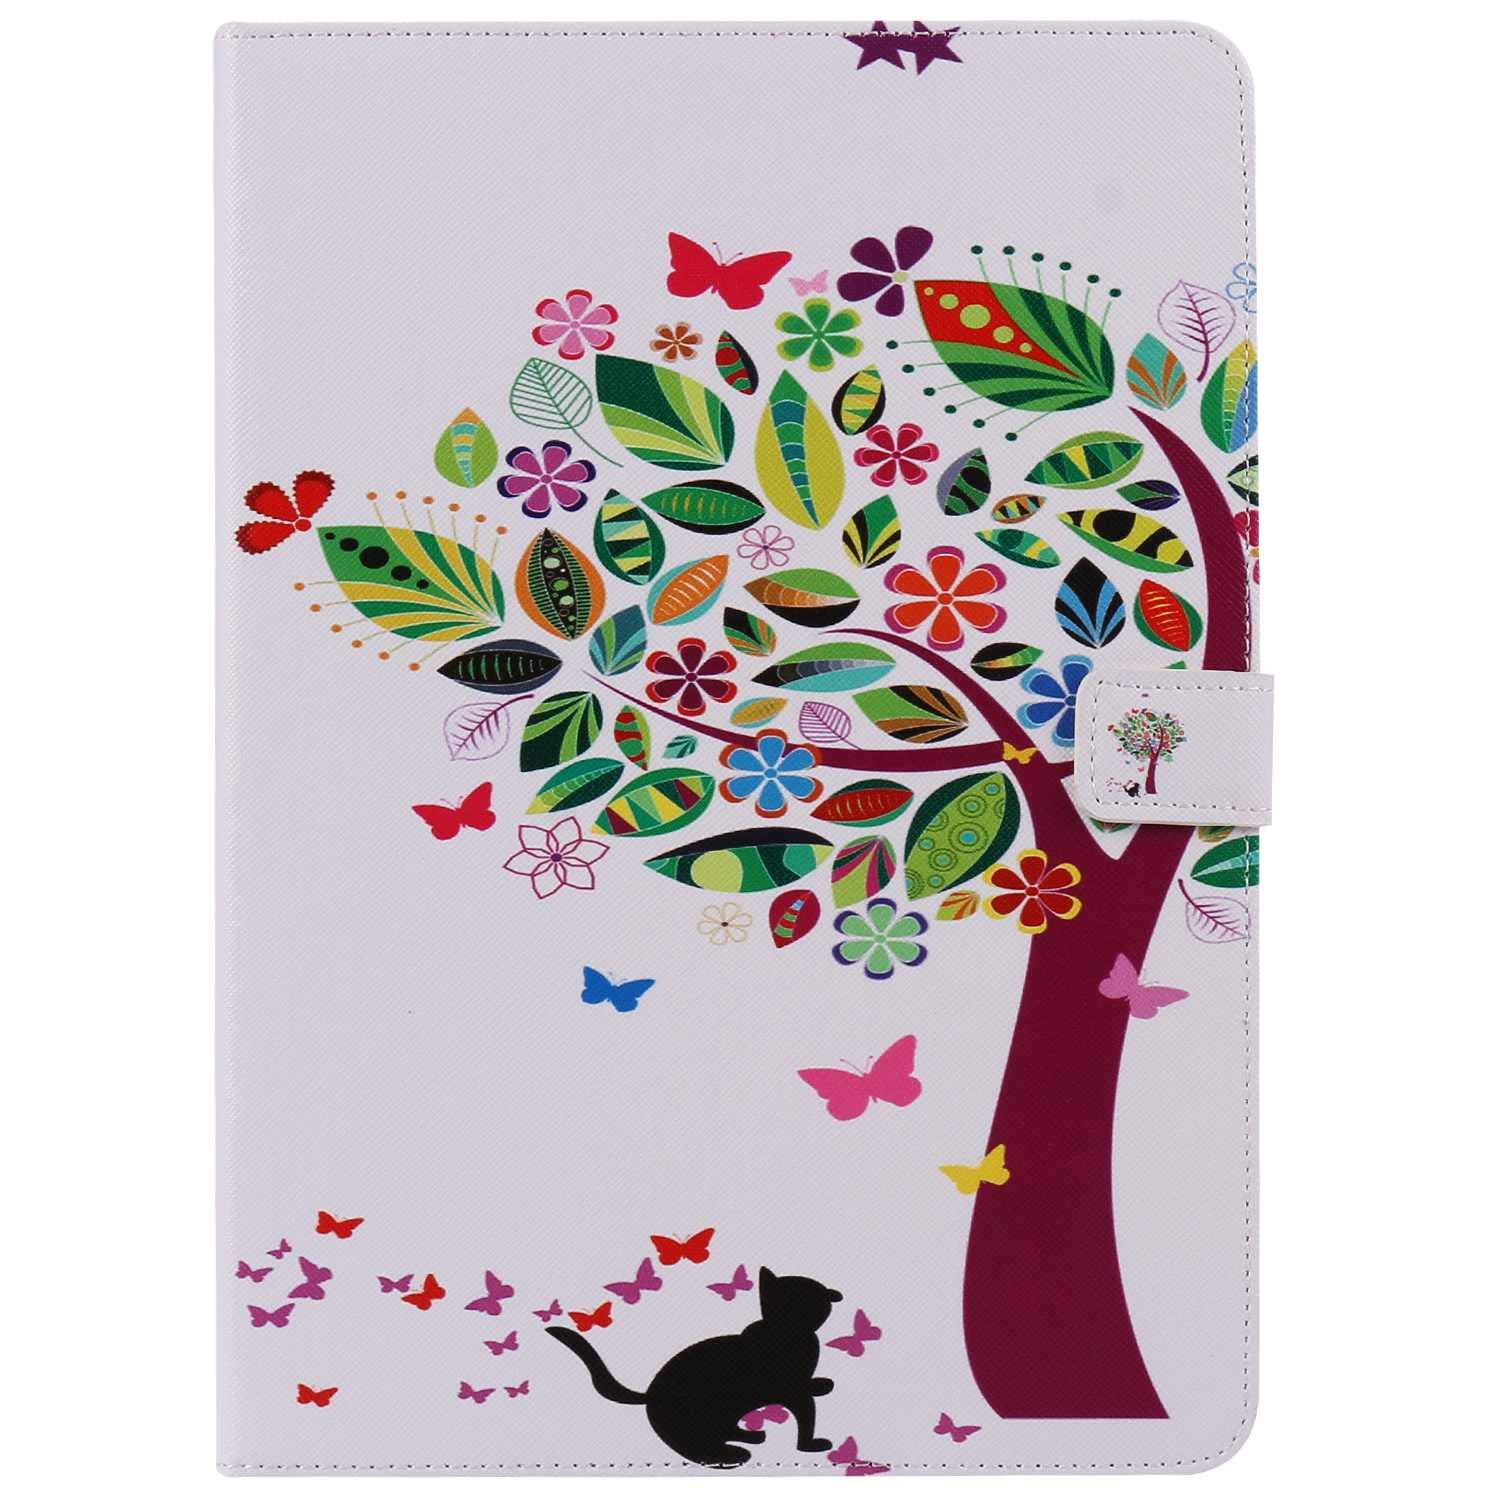 Bear Village iPad Pro 9.7 Inch Case, Anti Scratch Shell with Adjust Stand, Colorful Design Leather Stand Case for Apple iPad Pro 9.7 Inch, Tree Cat by Bear Village